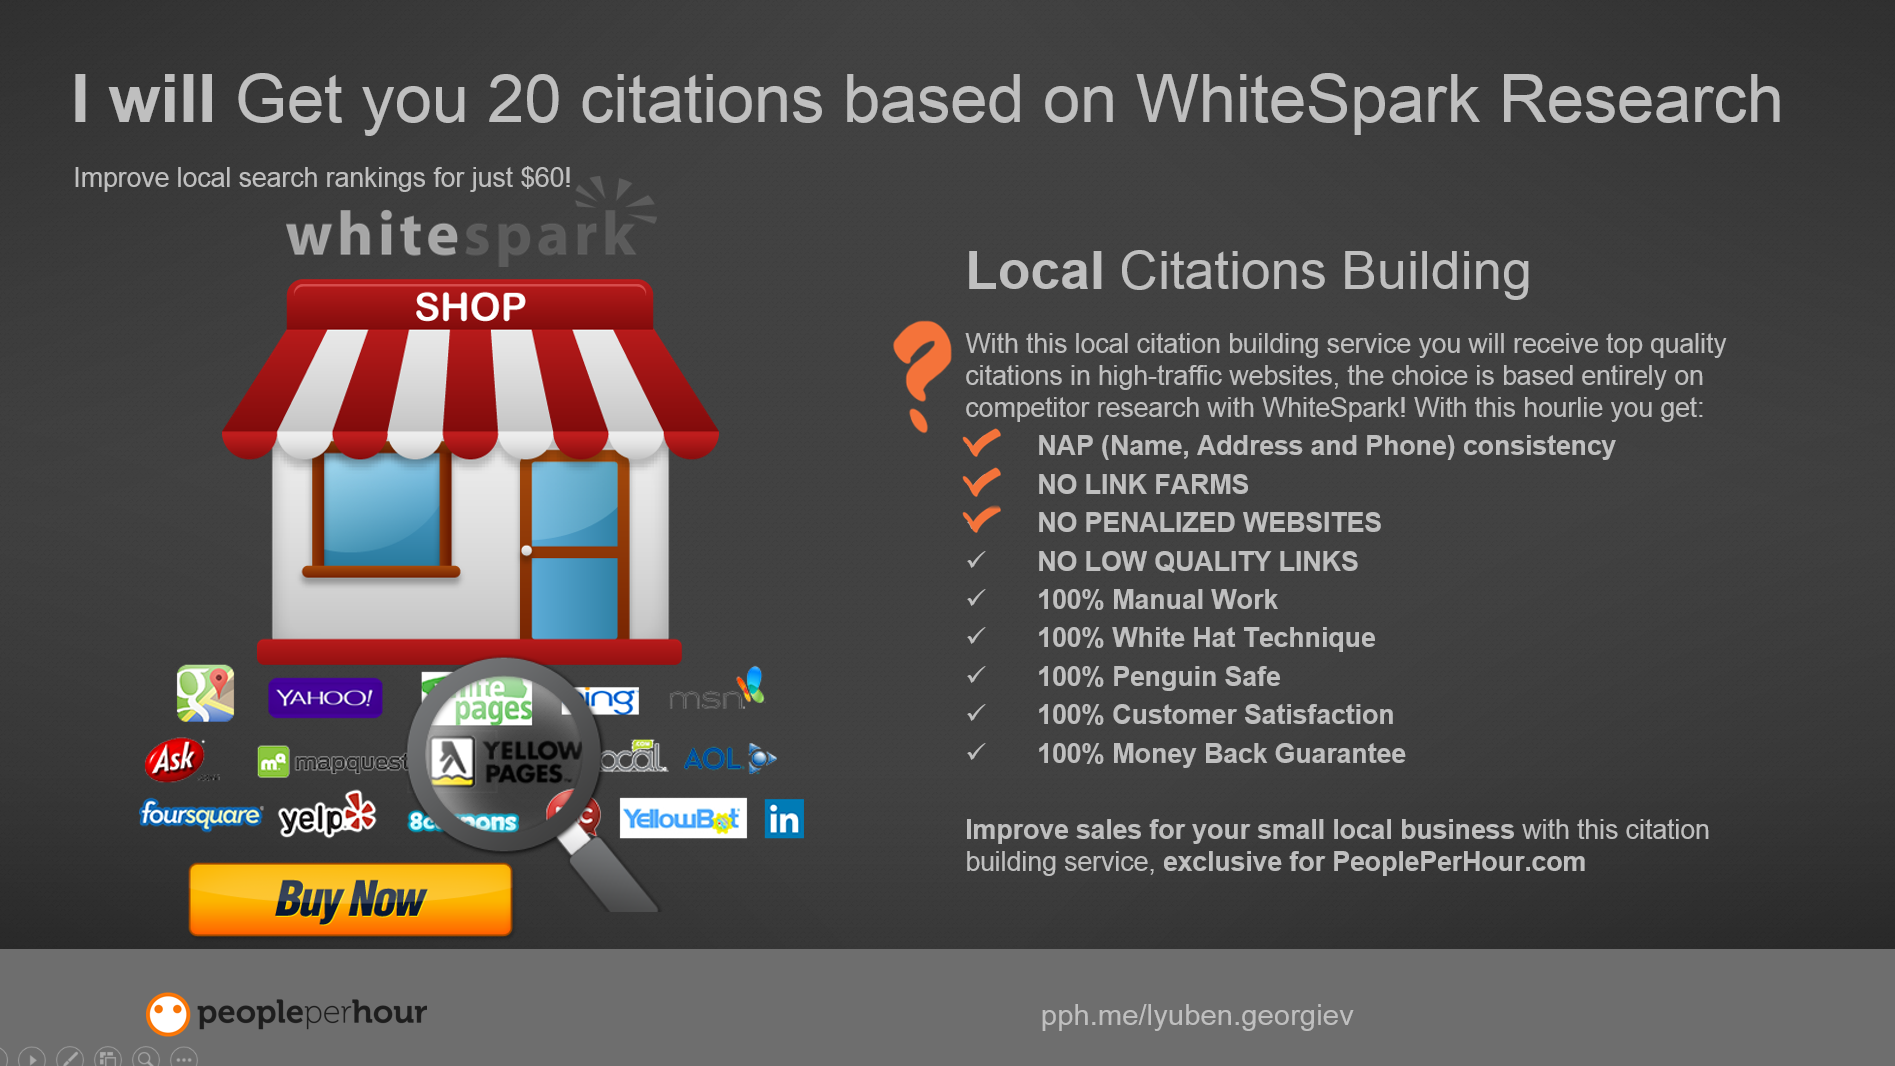 Get you 20 Local Citations and Boost Local SEO Traffic for just $45 order now at http://bit.ly/localcitations